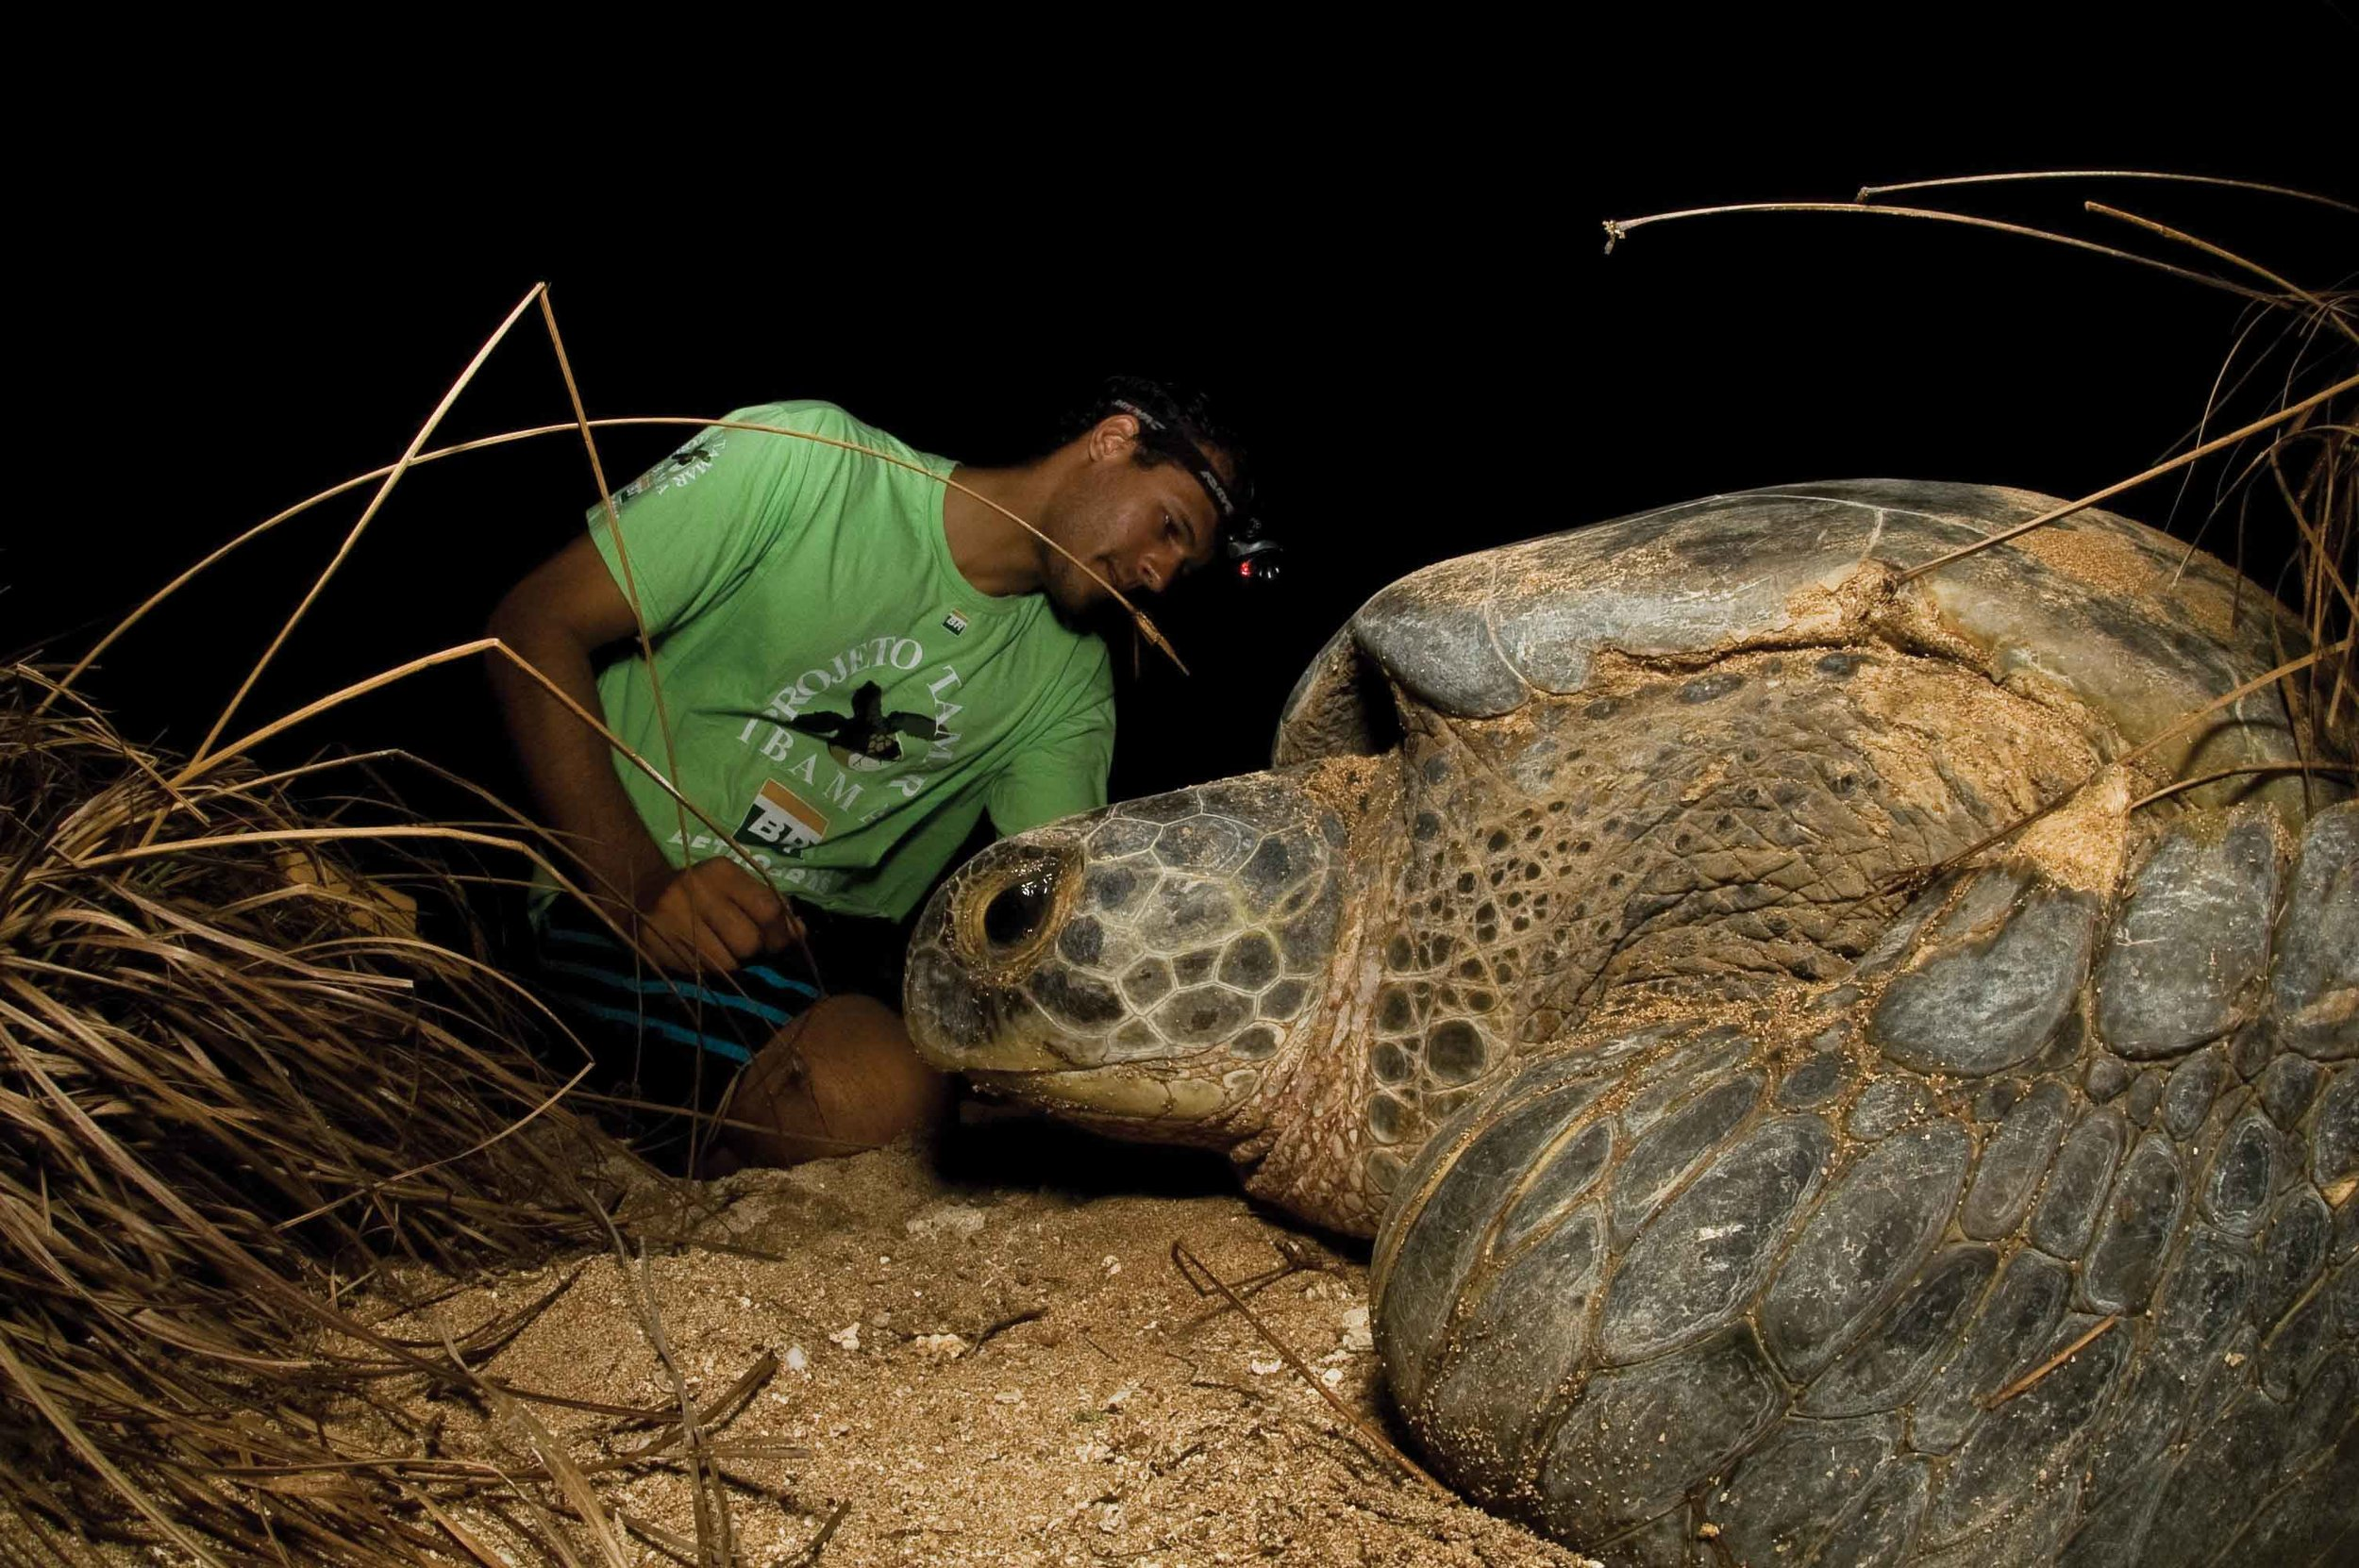 A researcher with Projeto TAMAR-ICMBio in Brazil monitors a nesting green turtle that was encountered during a nighttime beach survey. © Projeto Tamar – Marta Granville